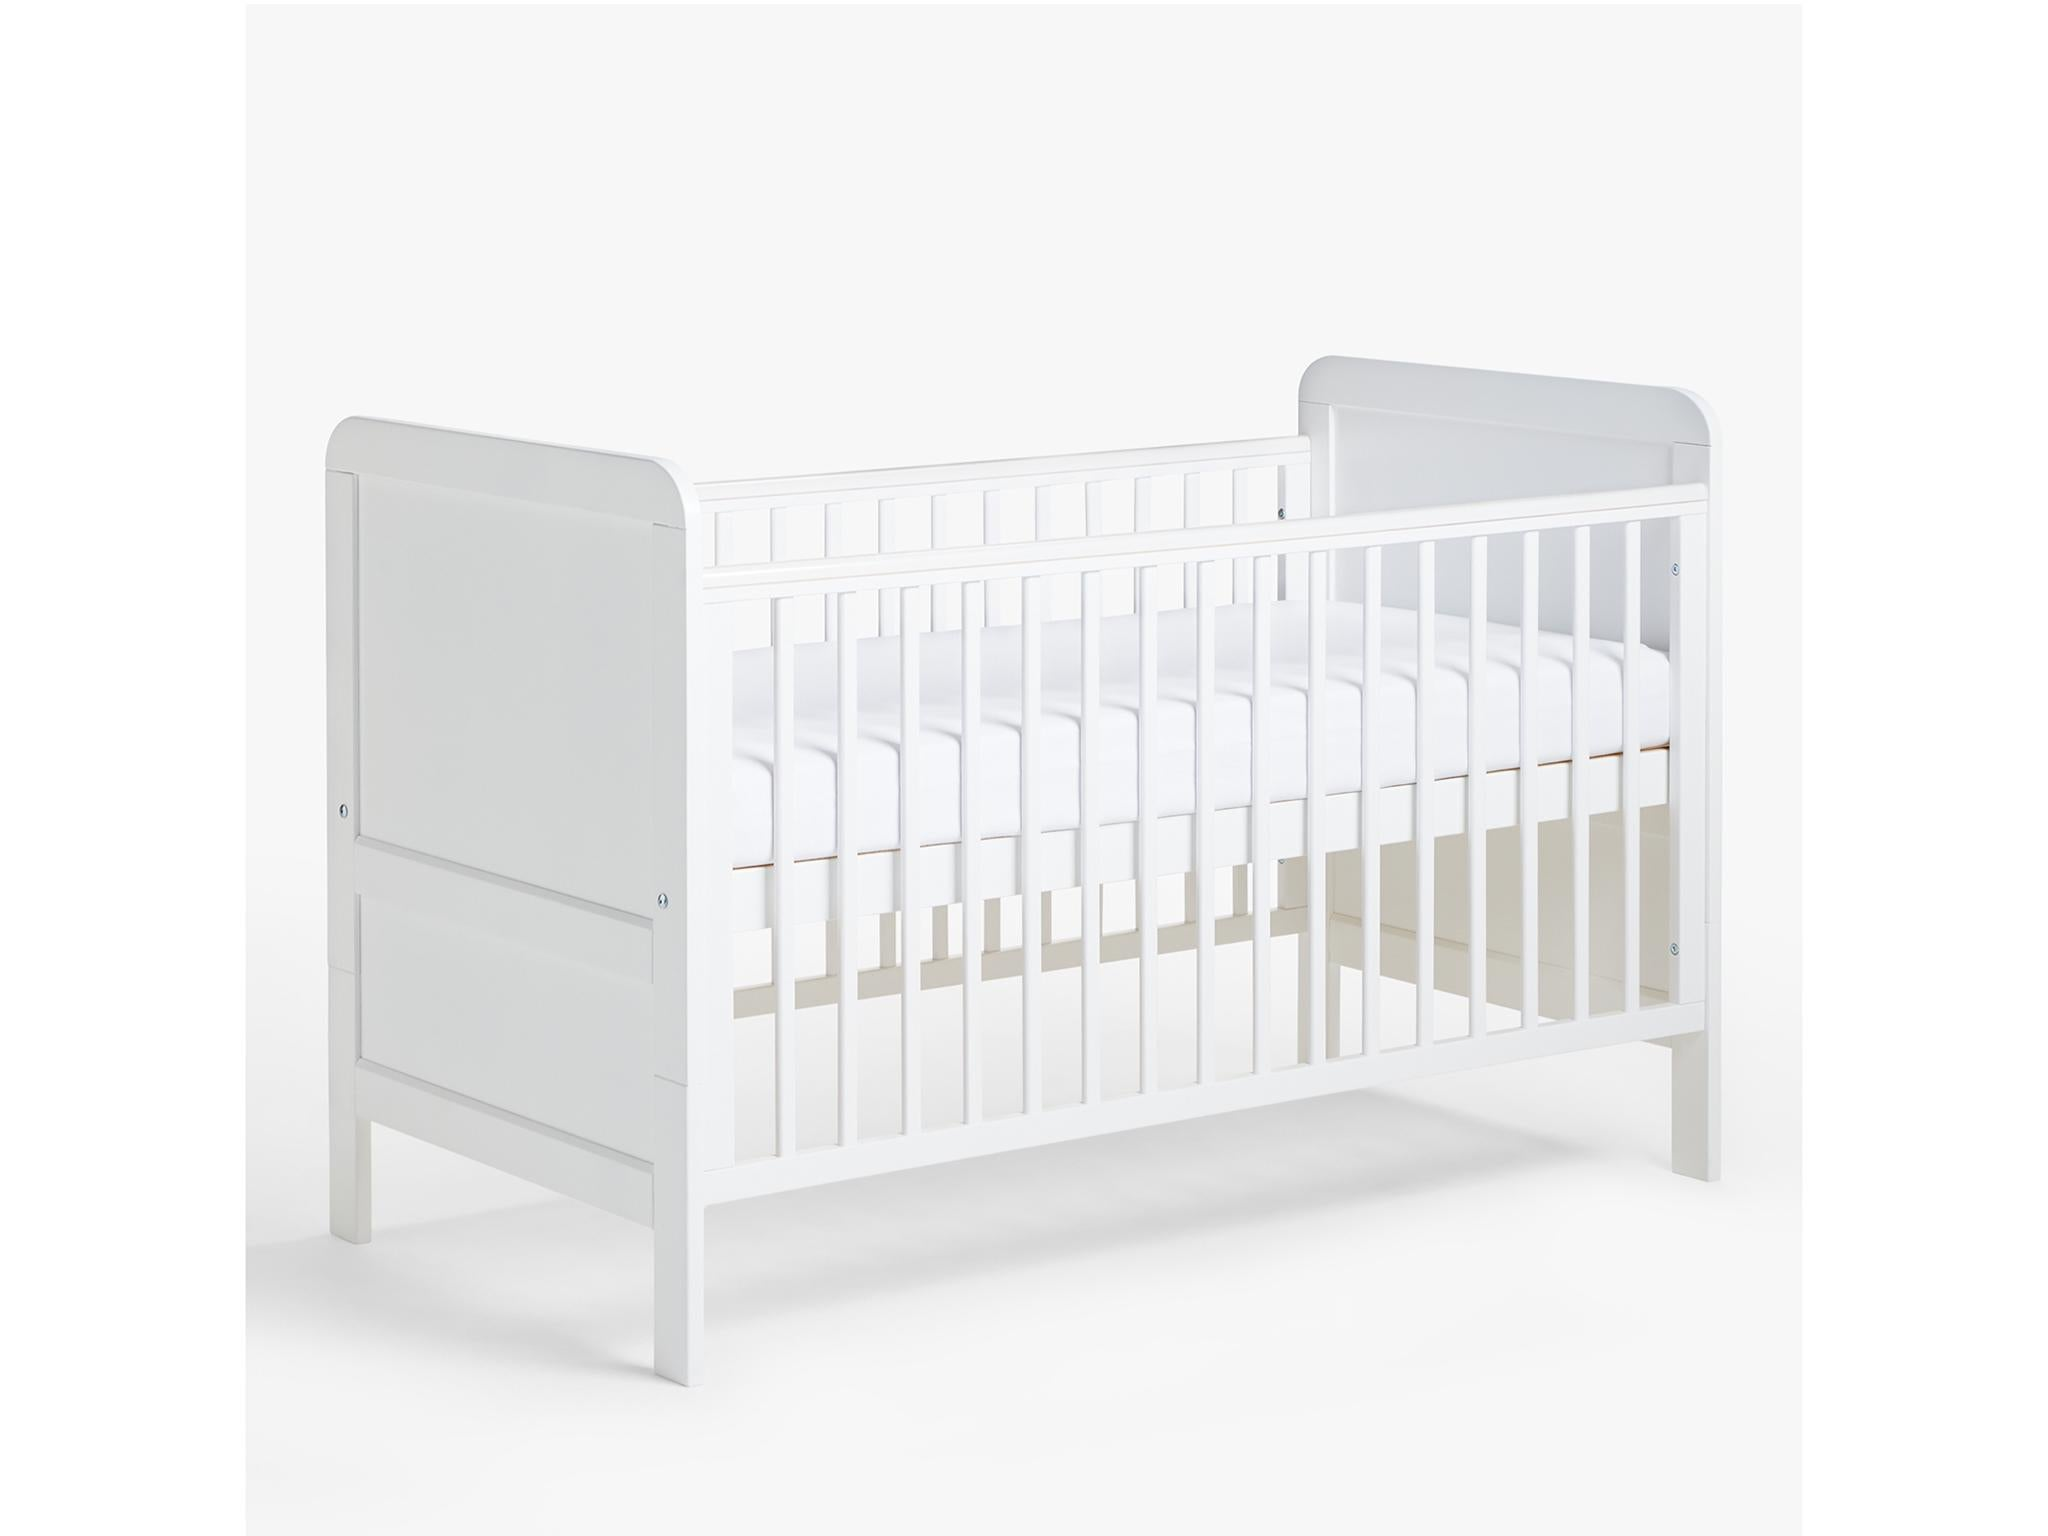 JERSEY FITTED SHEET COTTON MOSES BASKET CRIB COT BED BUNK BED